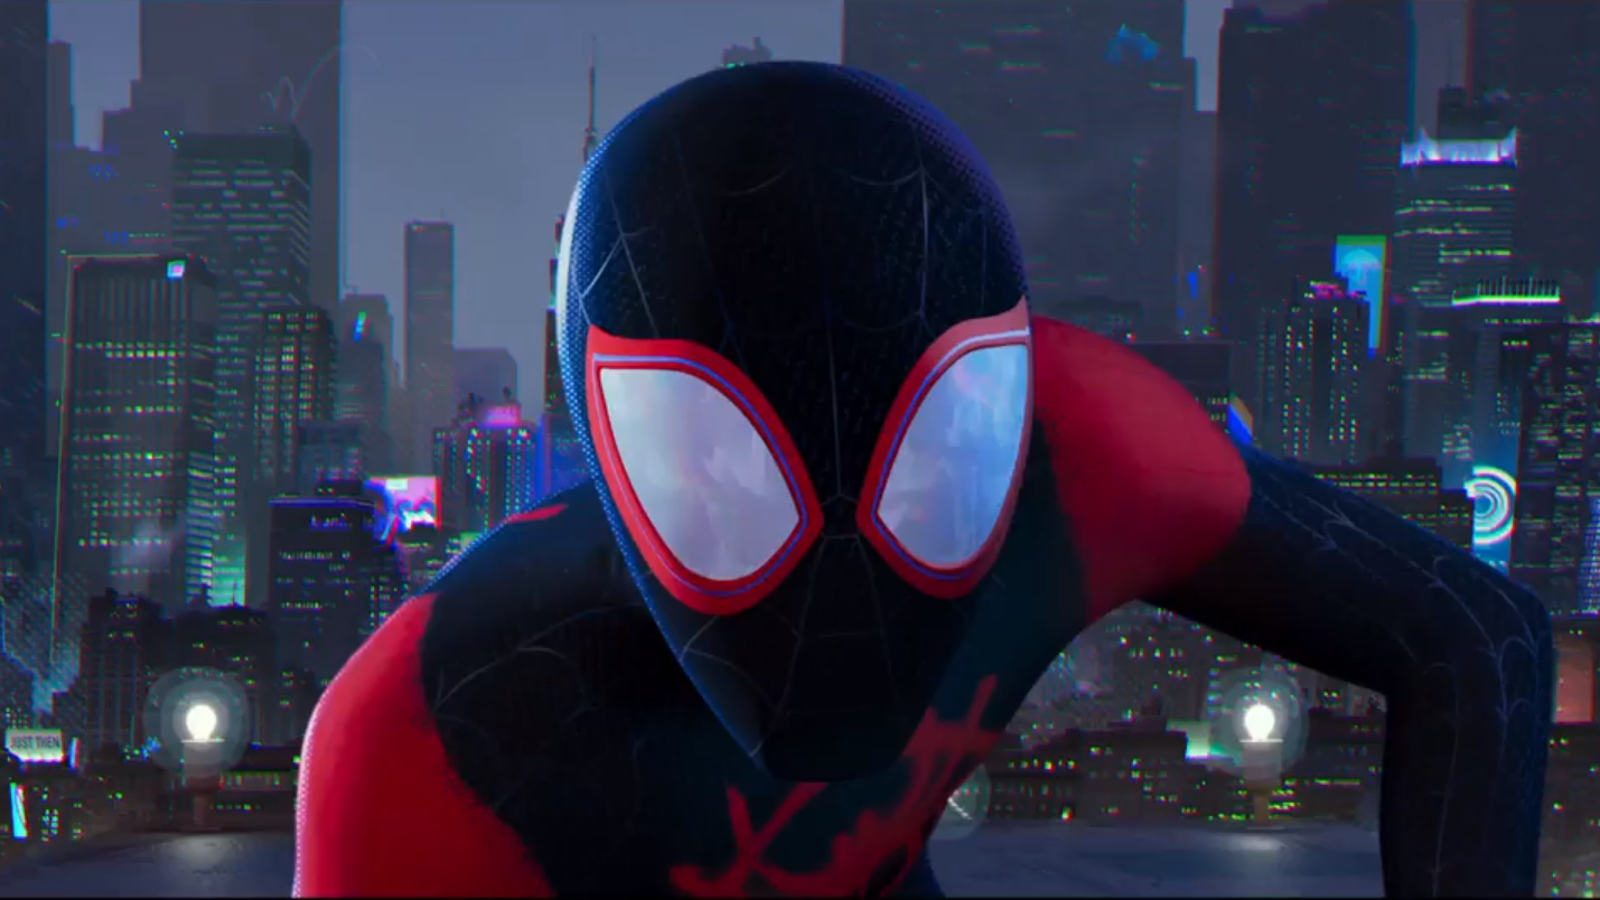 Meet The Big-Screen Miles Morales in First Trailer for Spider-Man: Into the Spider-Verse